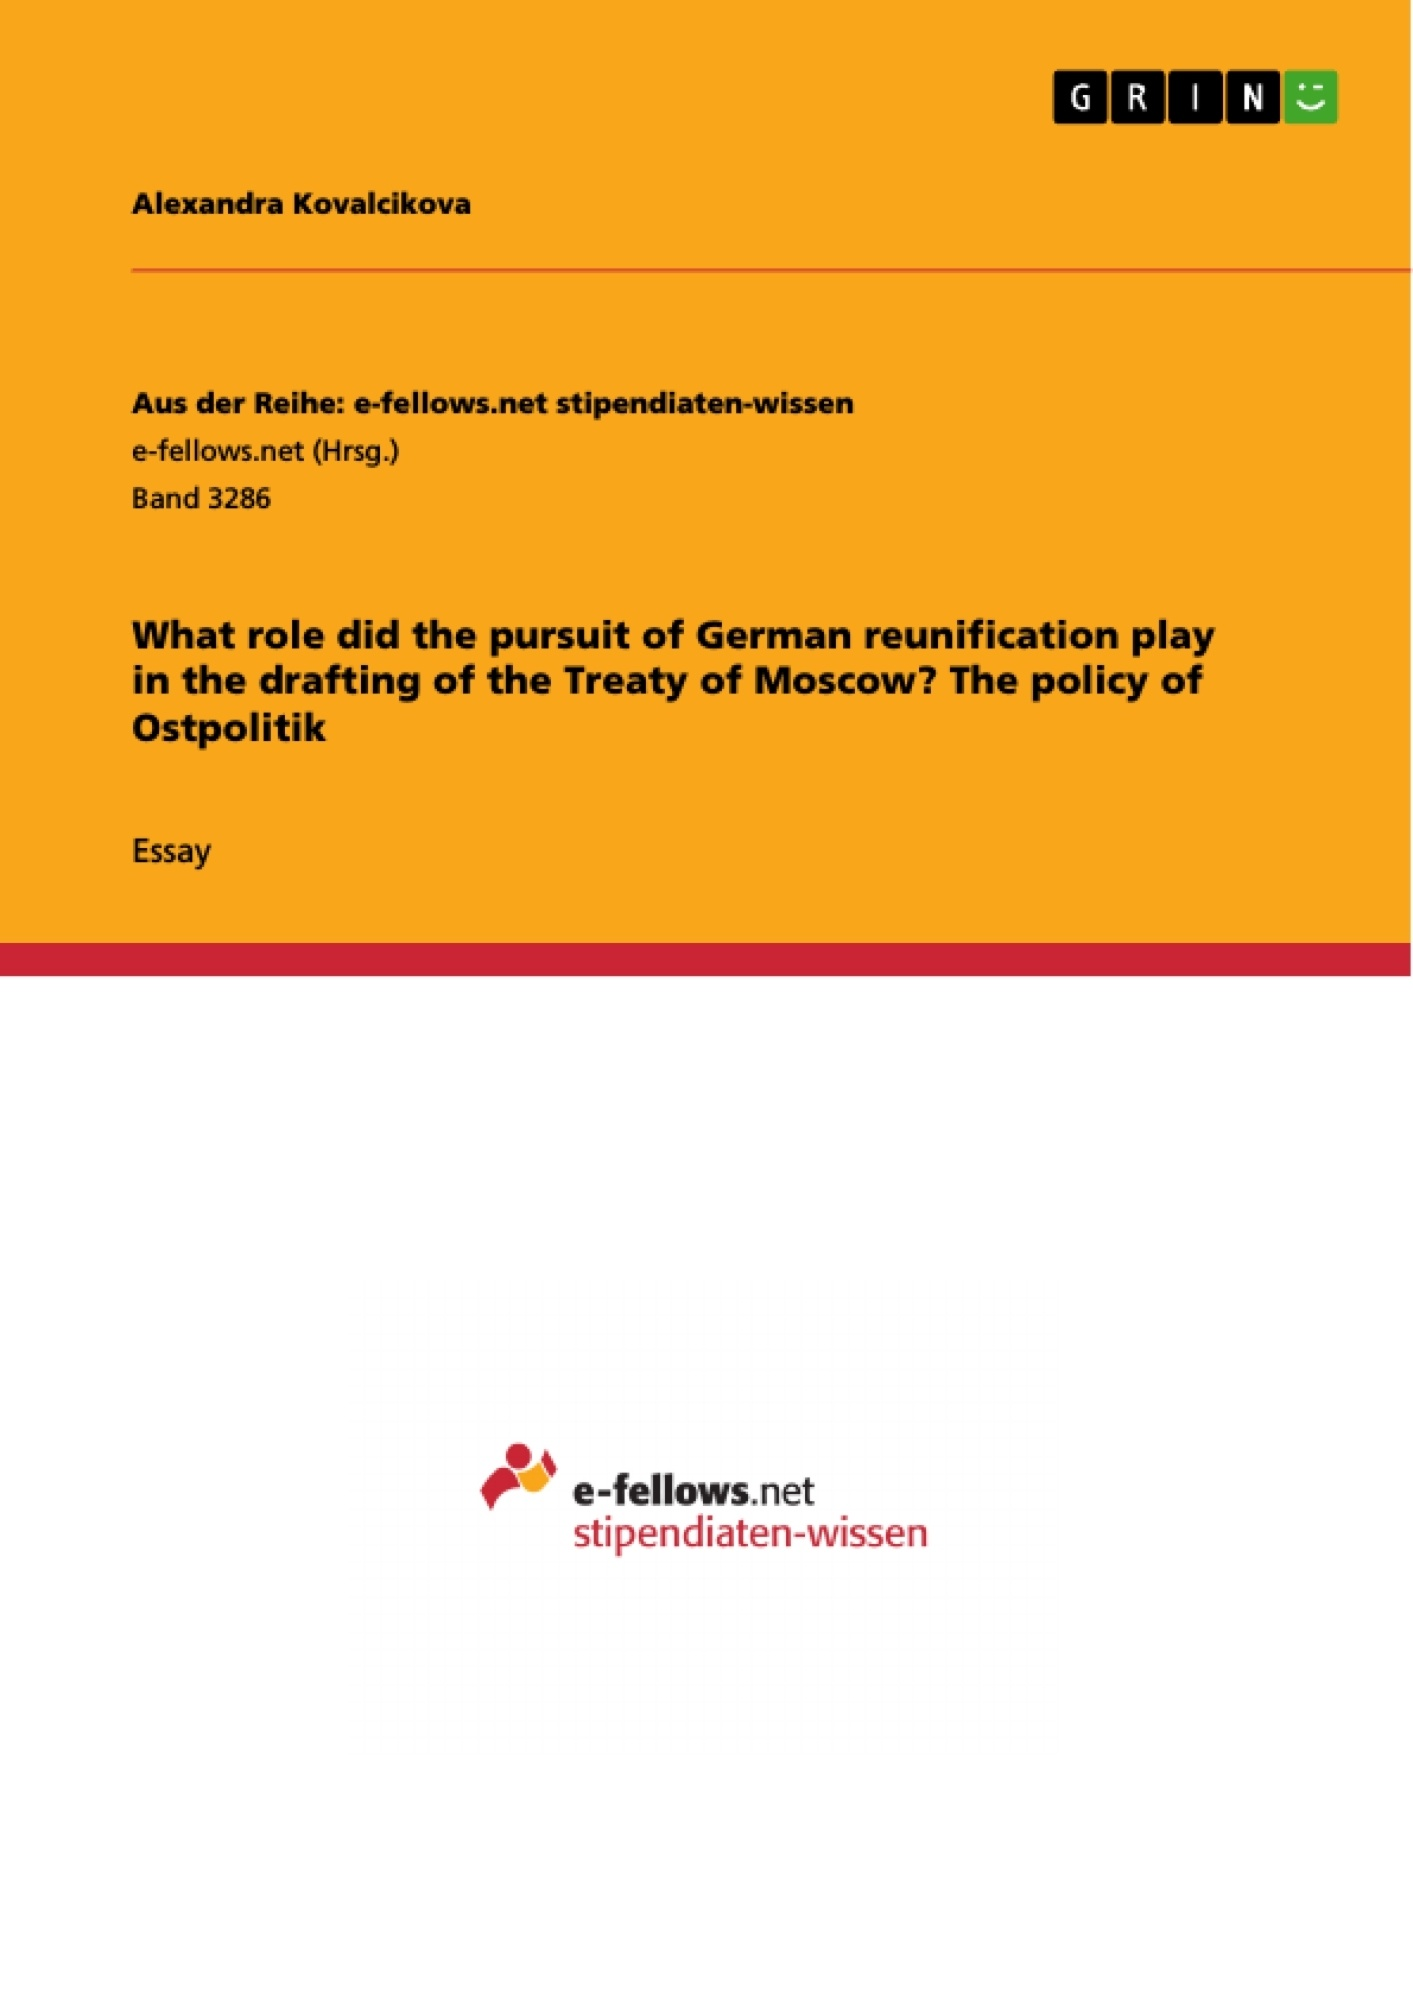 Title: What role did the pursuit of German reunification play in the drafting of the Treaty of Moscow? The policy of Ostpolitik